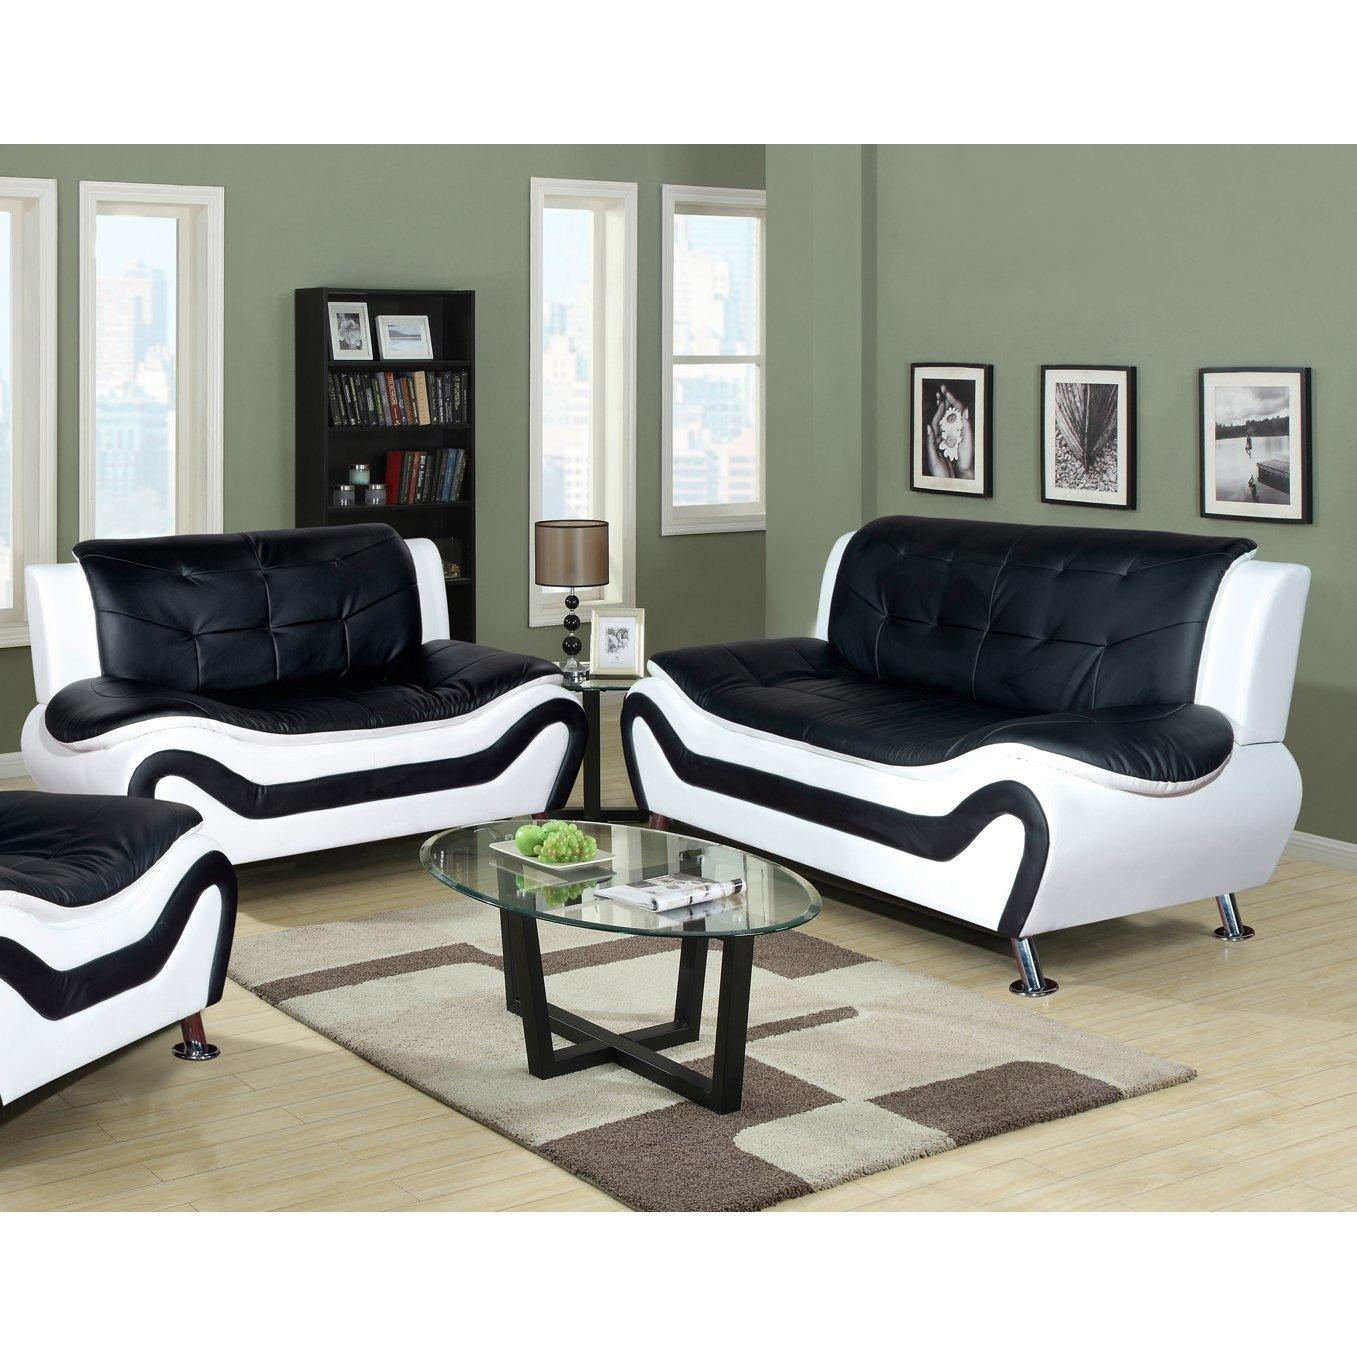 discount sofa and loveseat sets french country 2019 latest black white sofas loveseats ideas